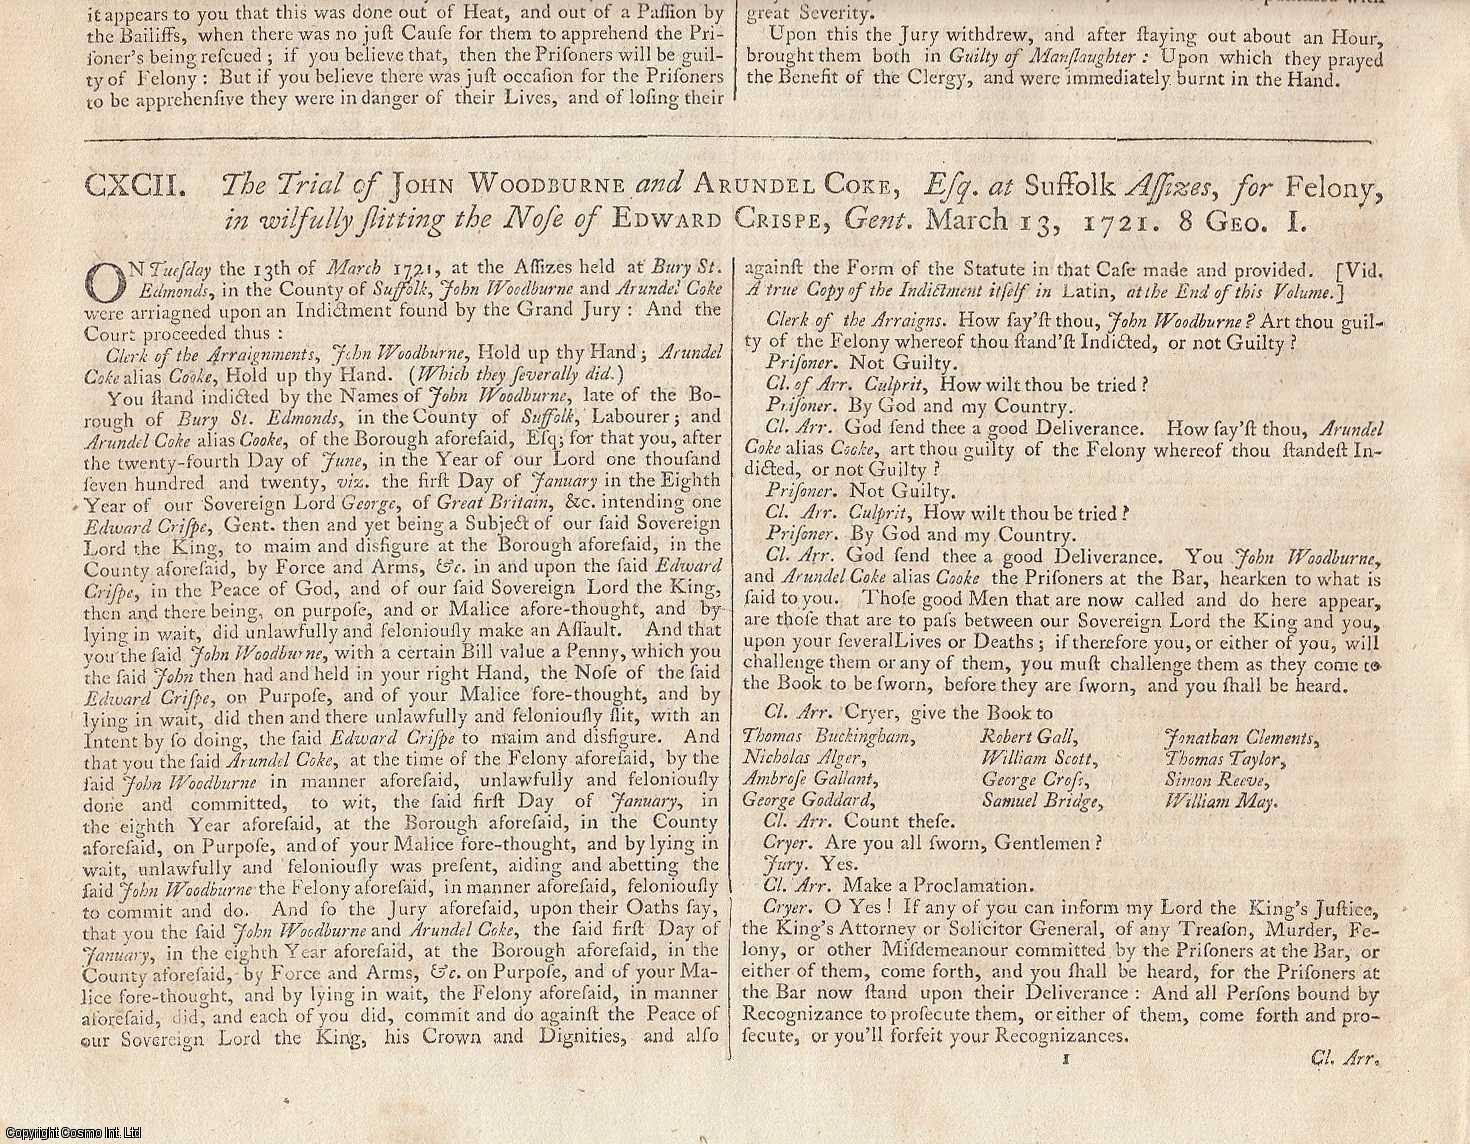 COVENTRY ACT CONVICTION.  The Trial of John Woodburne and Arundel Coke, Esq: at Suffolk Assizes for felony, in wilfully slitting the Nose of Edward Crispe, Gent. March 13, 1721., [Trial].